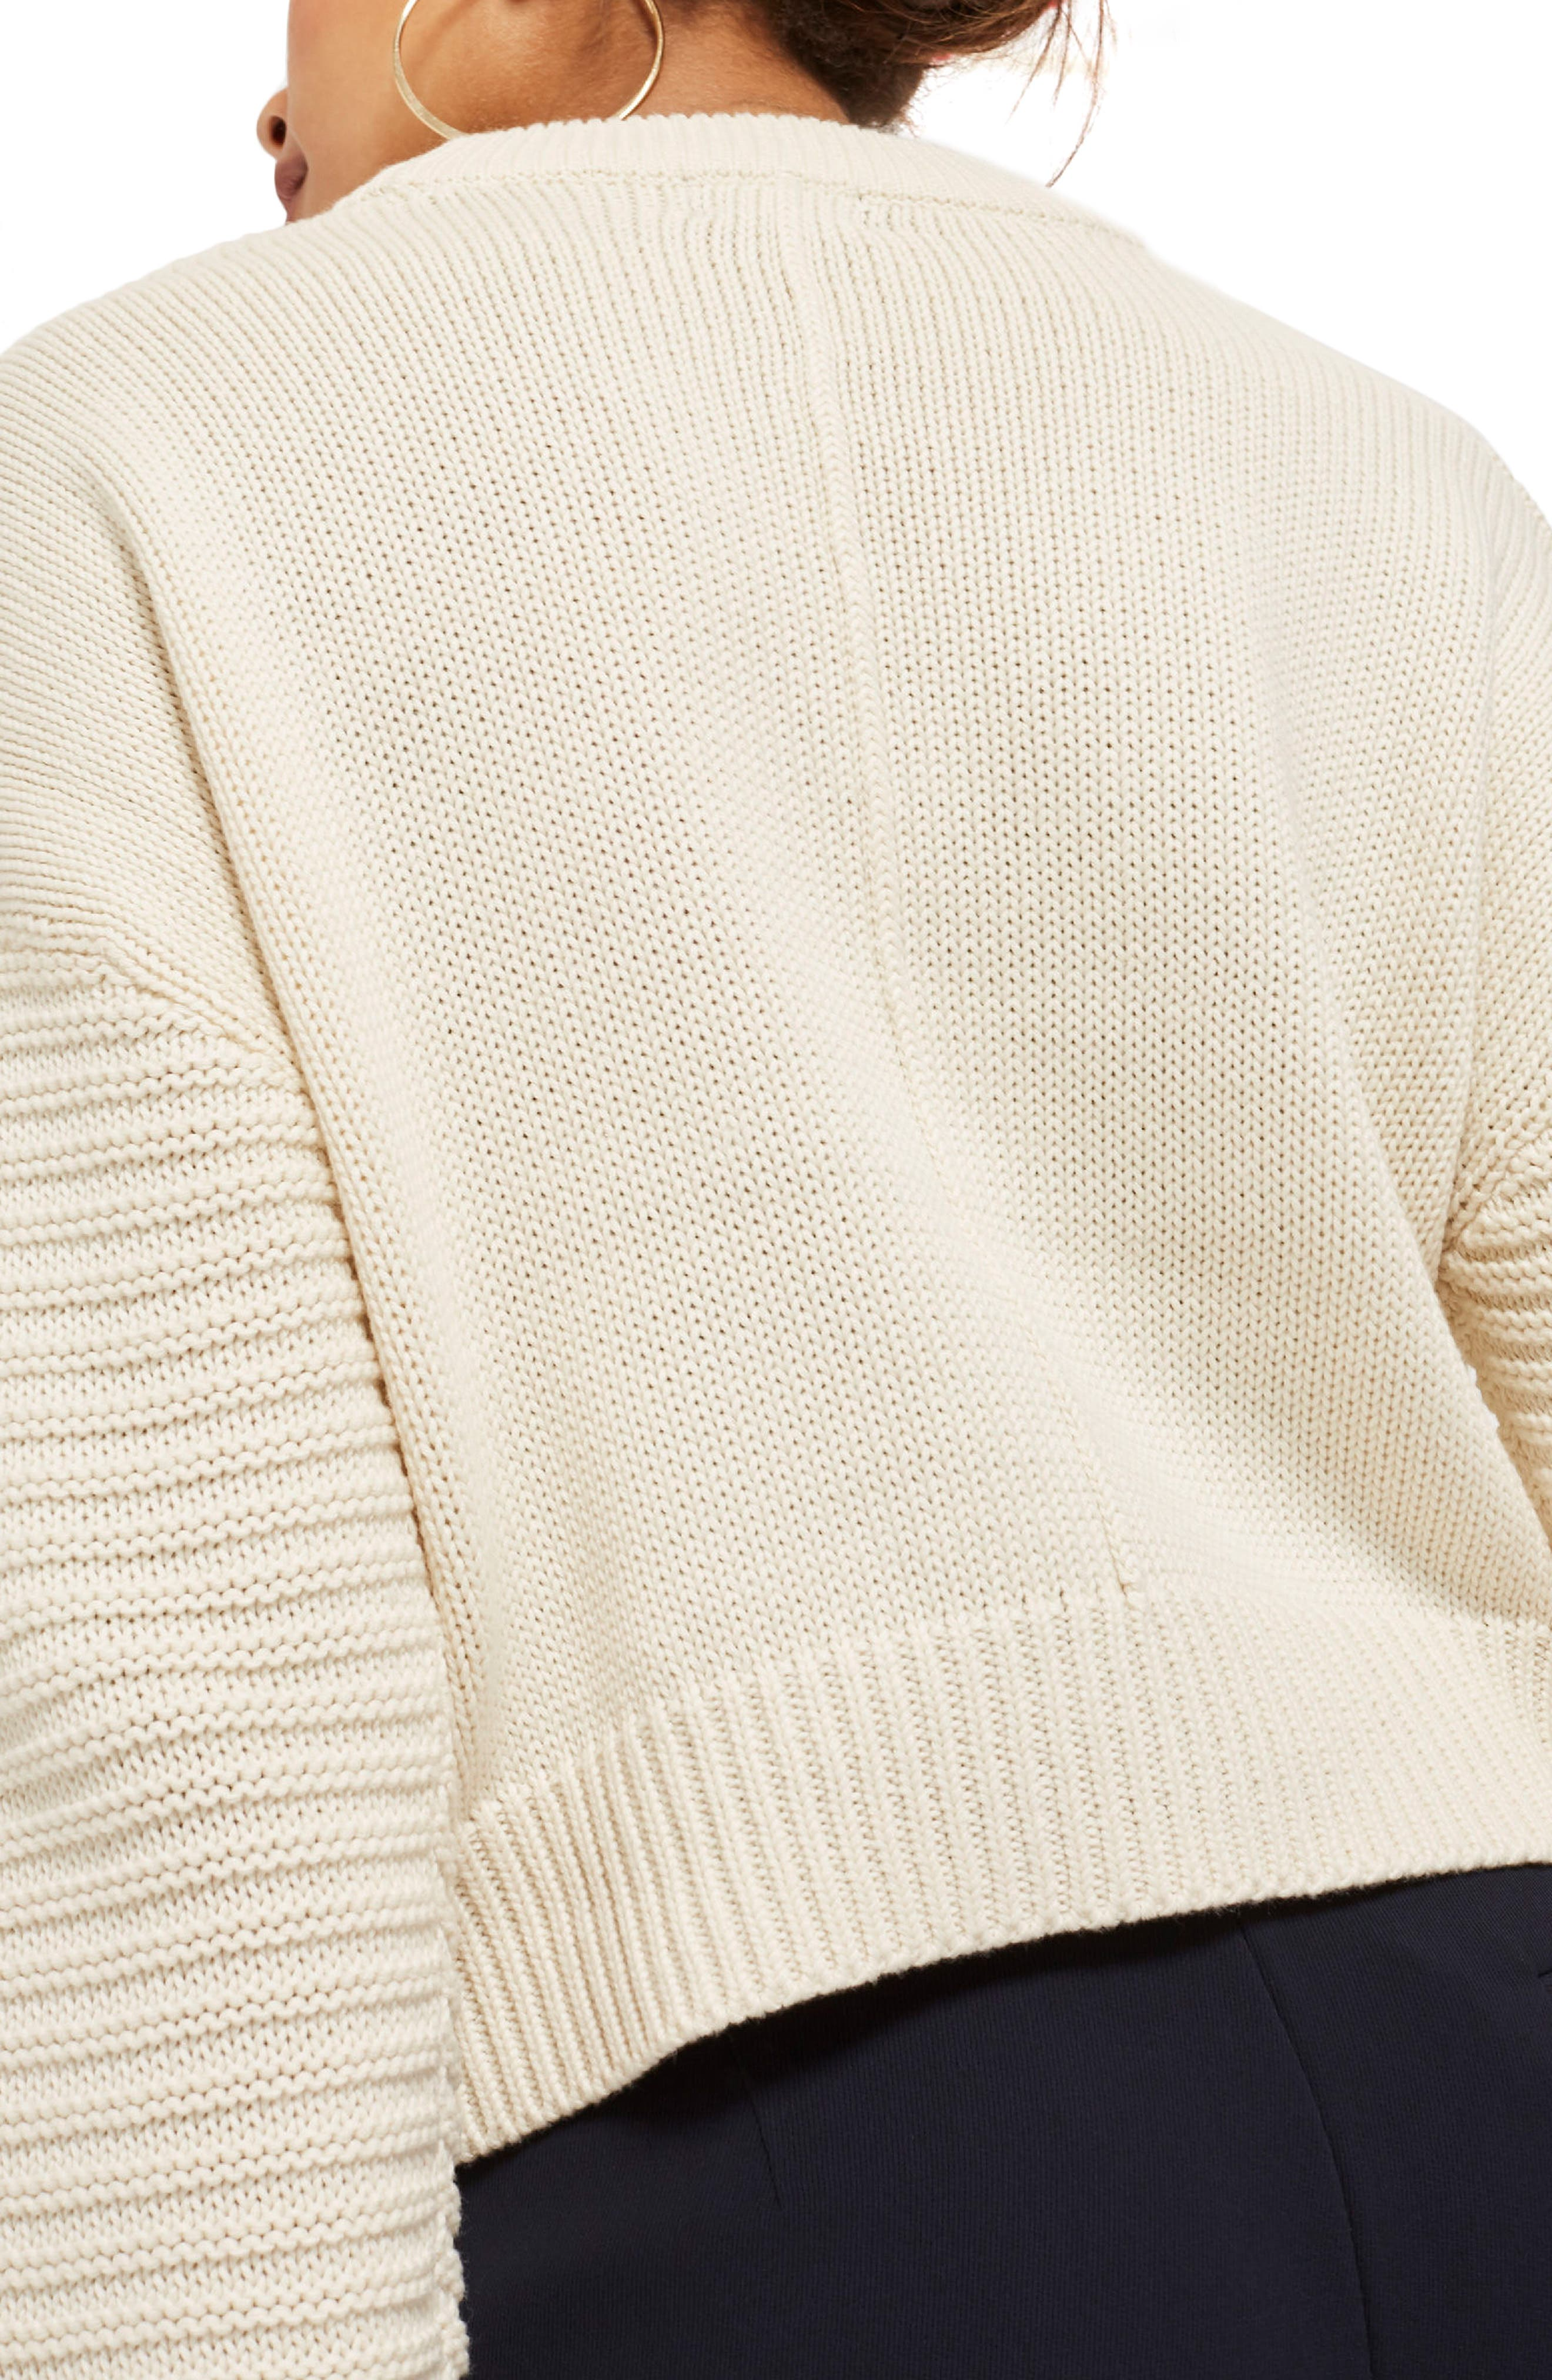 Stitch Sleeve Sweater,                             Alternate thumbnail 2, color,